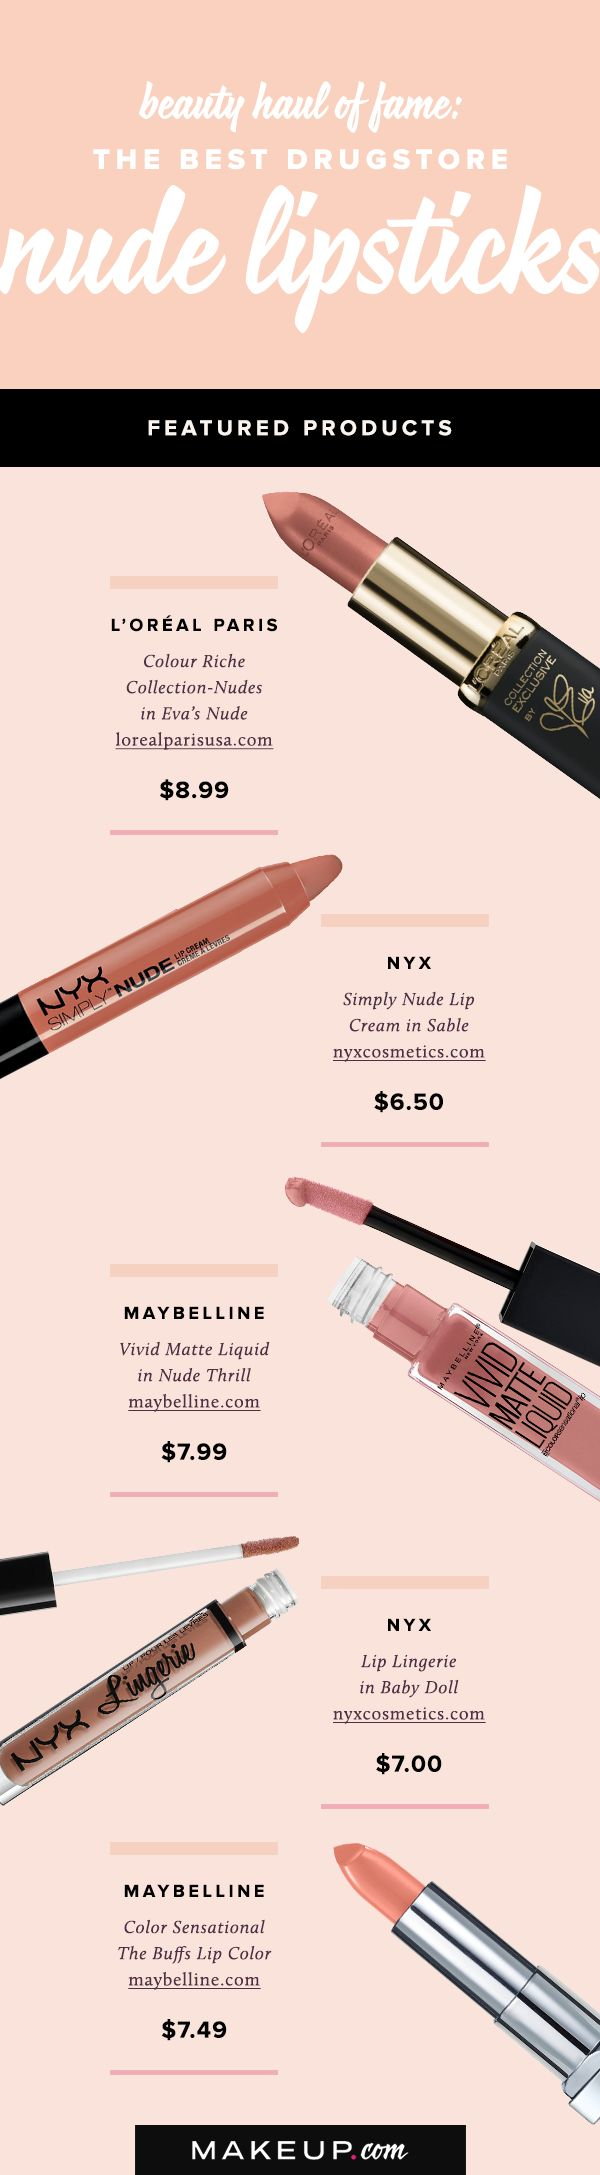 Nude lipstick is having a major moment in the beauty world, and you can get some of the best products at your local drugstore! Here are our picks for the best affordable nude lipsticks around.